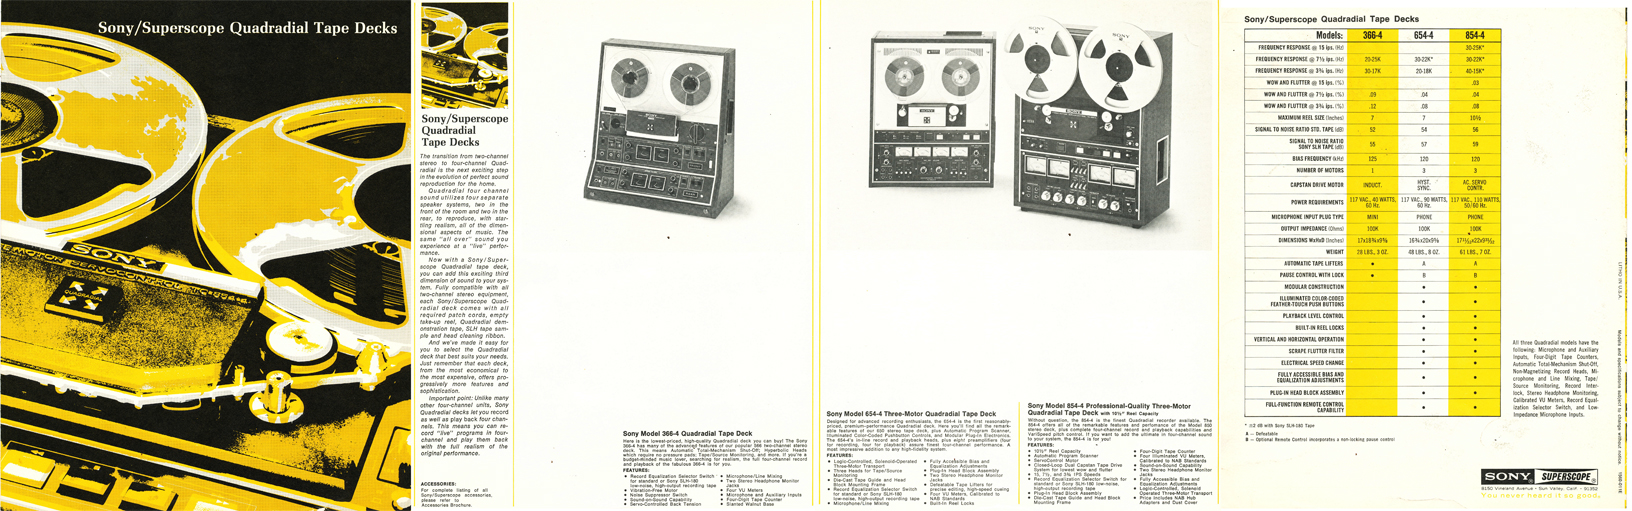 1971 brochure for Sony 4 channel Quadradial reel to reel tape decks in the Reel2ReelTexas.com's vintage recording collection